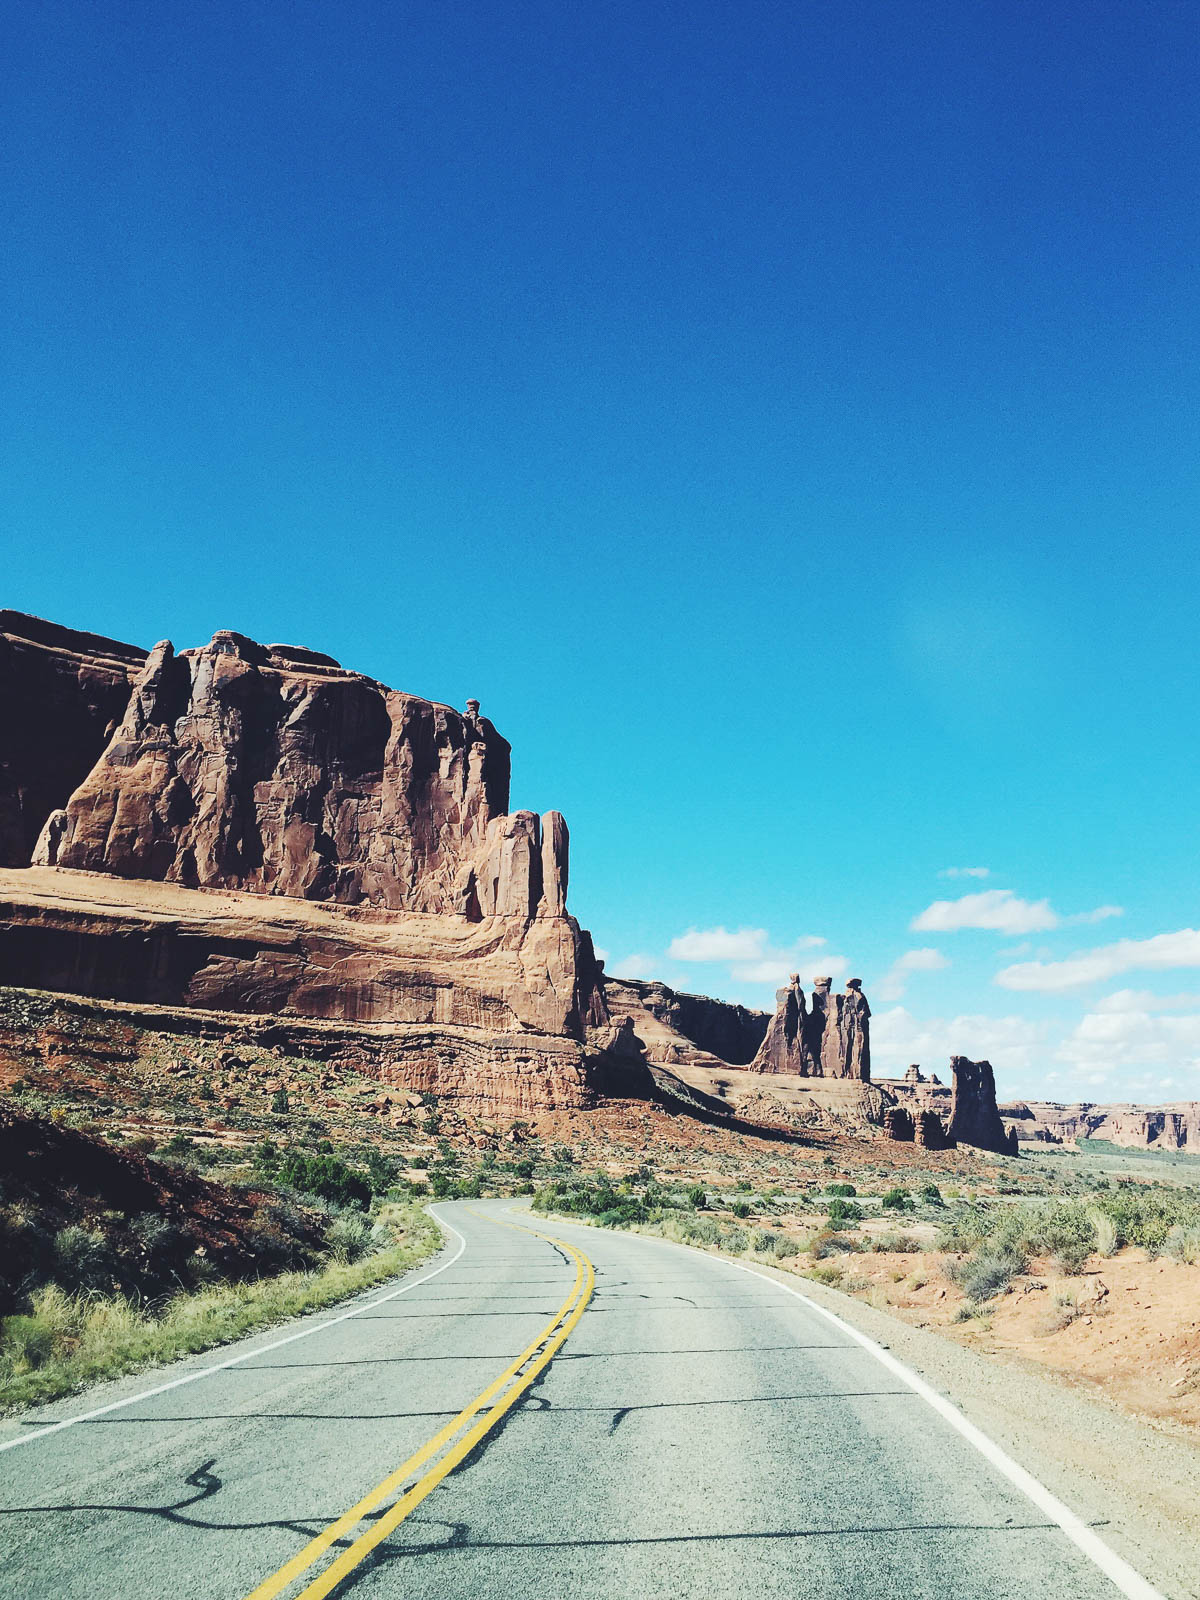 Looking for an adventurous trip full of hiking and good eating? Then it's time to check out Moab, Utah. Here's your 48 Hour guide.